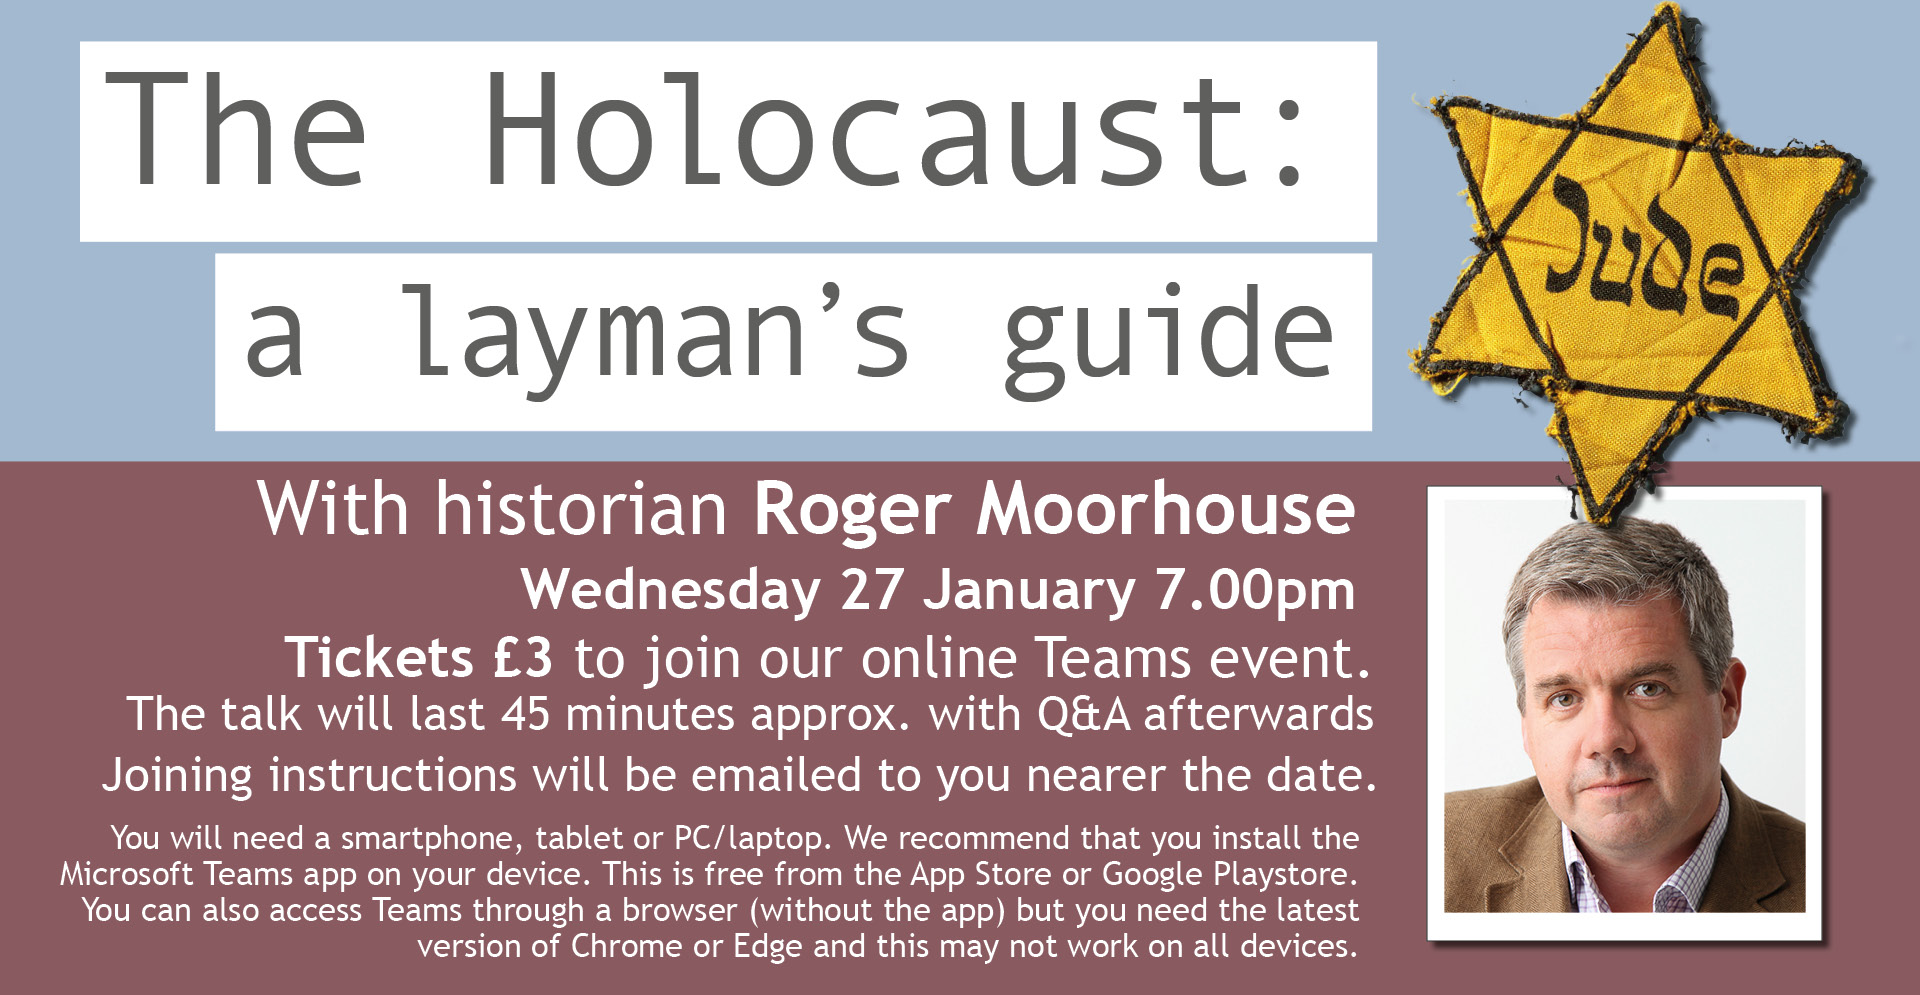 The Holocaust: A layman's guide